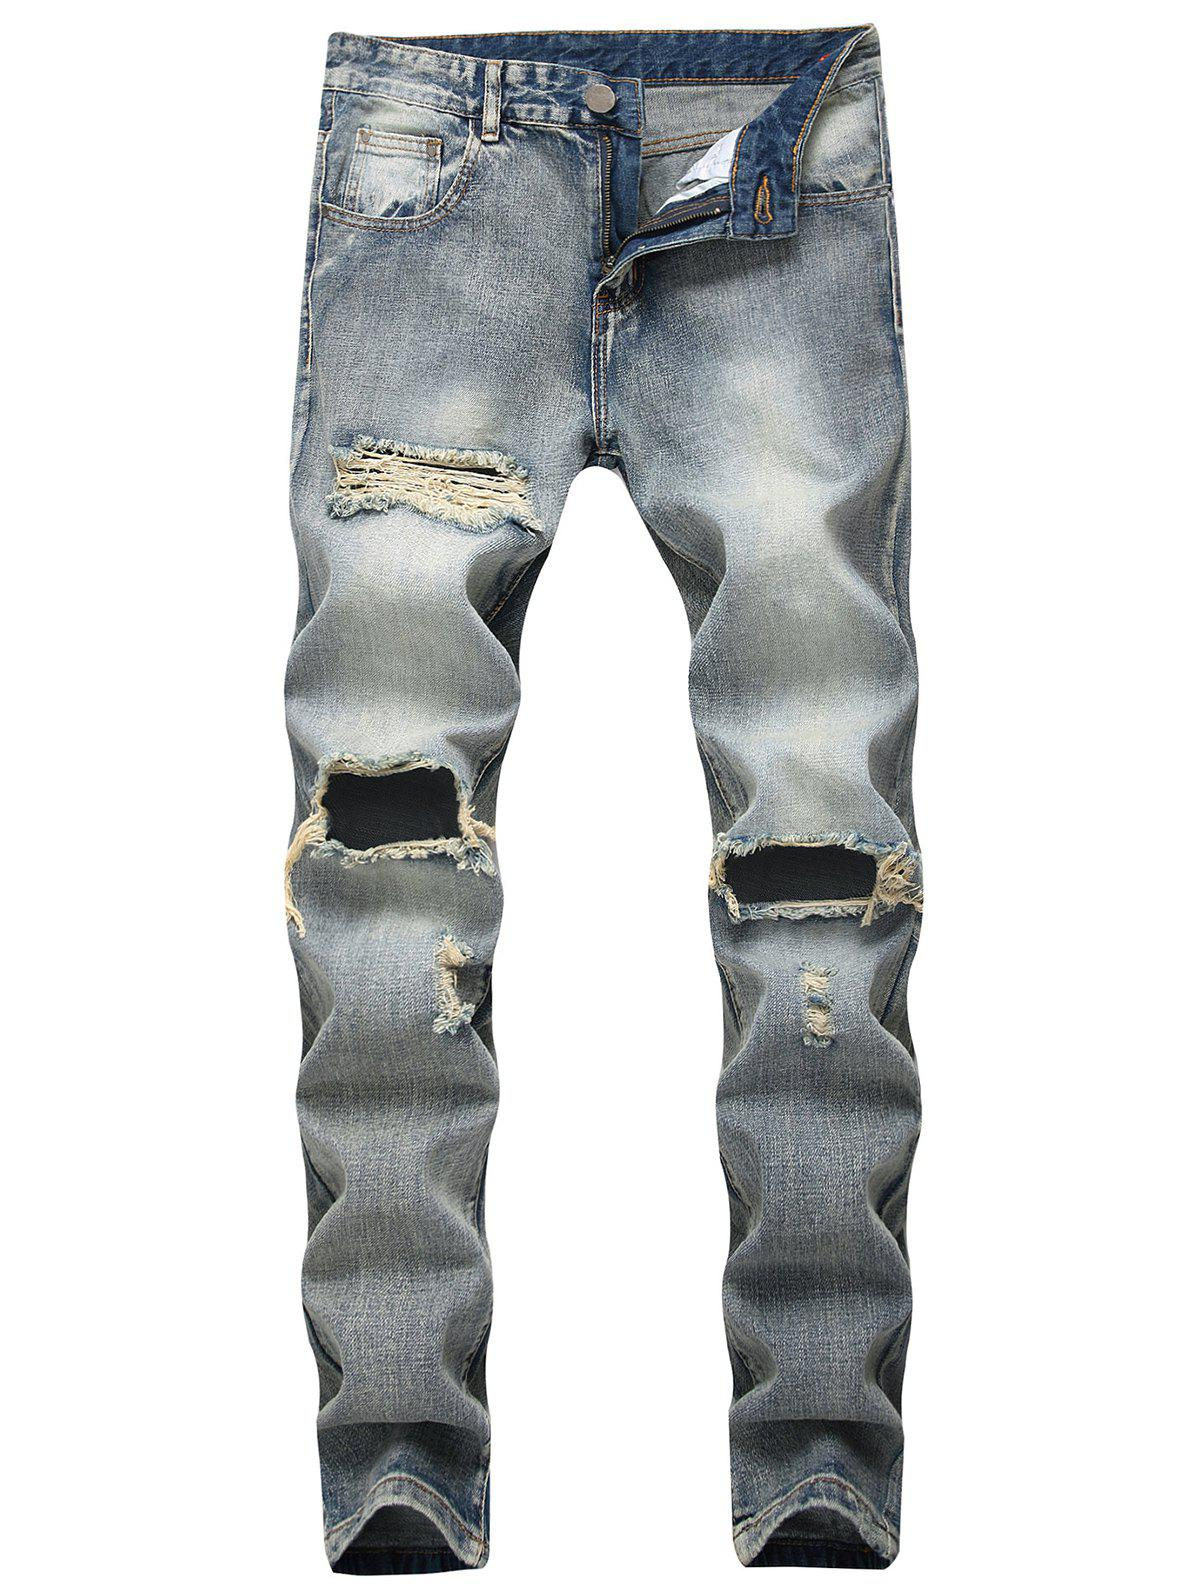 Zip Fly Ripped Faded Wash Jeans - BLUE GRAY 42